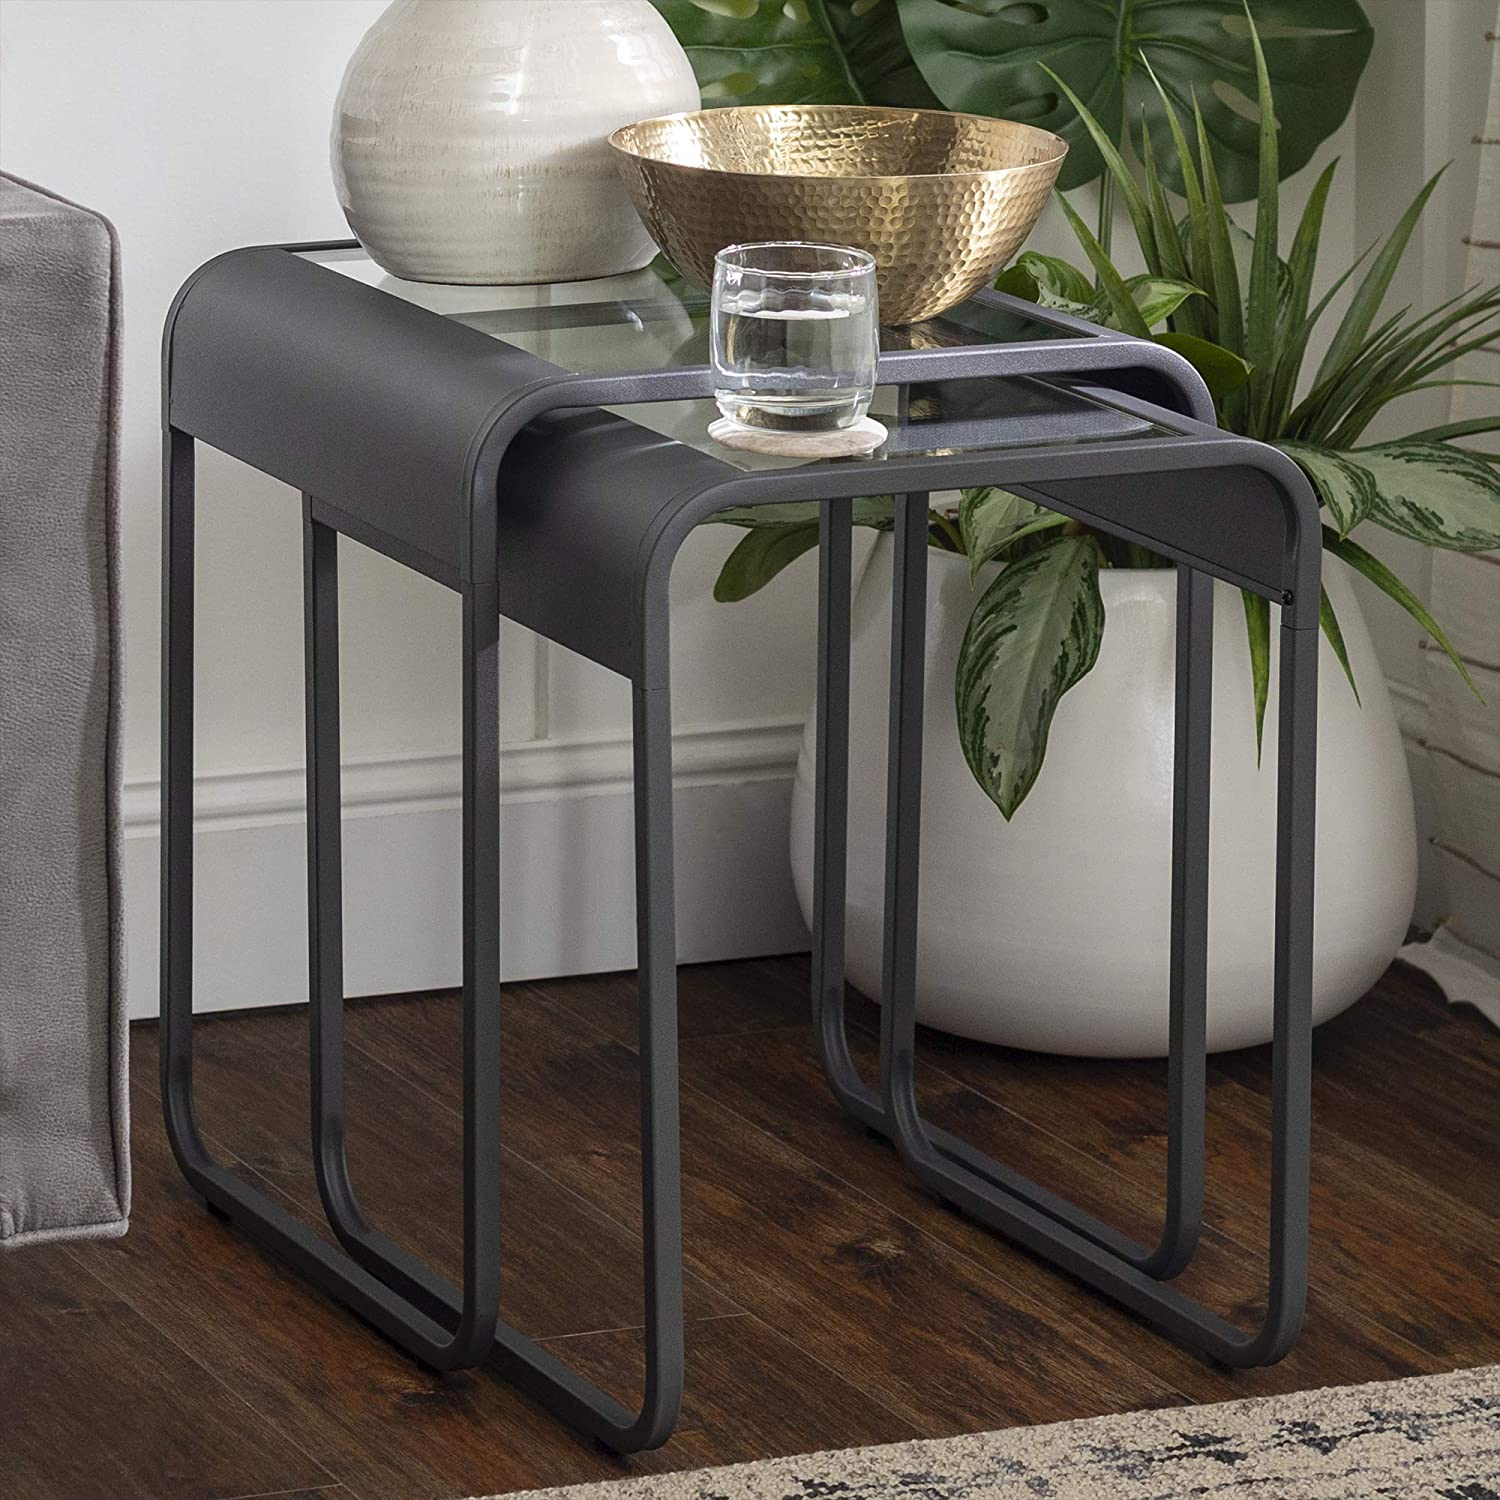 Enjoy fast, free nationwide shipping!  Family owned and operated, HawkinsWoodshop.com is your one stop shop for affordable furniture.  Shop HawkinsWoodshop.com for solid wood & metal modern, traditional, contemporary, industrial, custom, rustic, and farmhouse furniture including our Curved Metal Frame Nesting End Table in Gun Metal Grey.